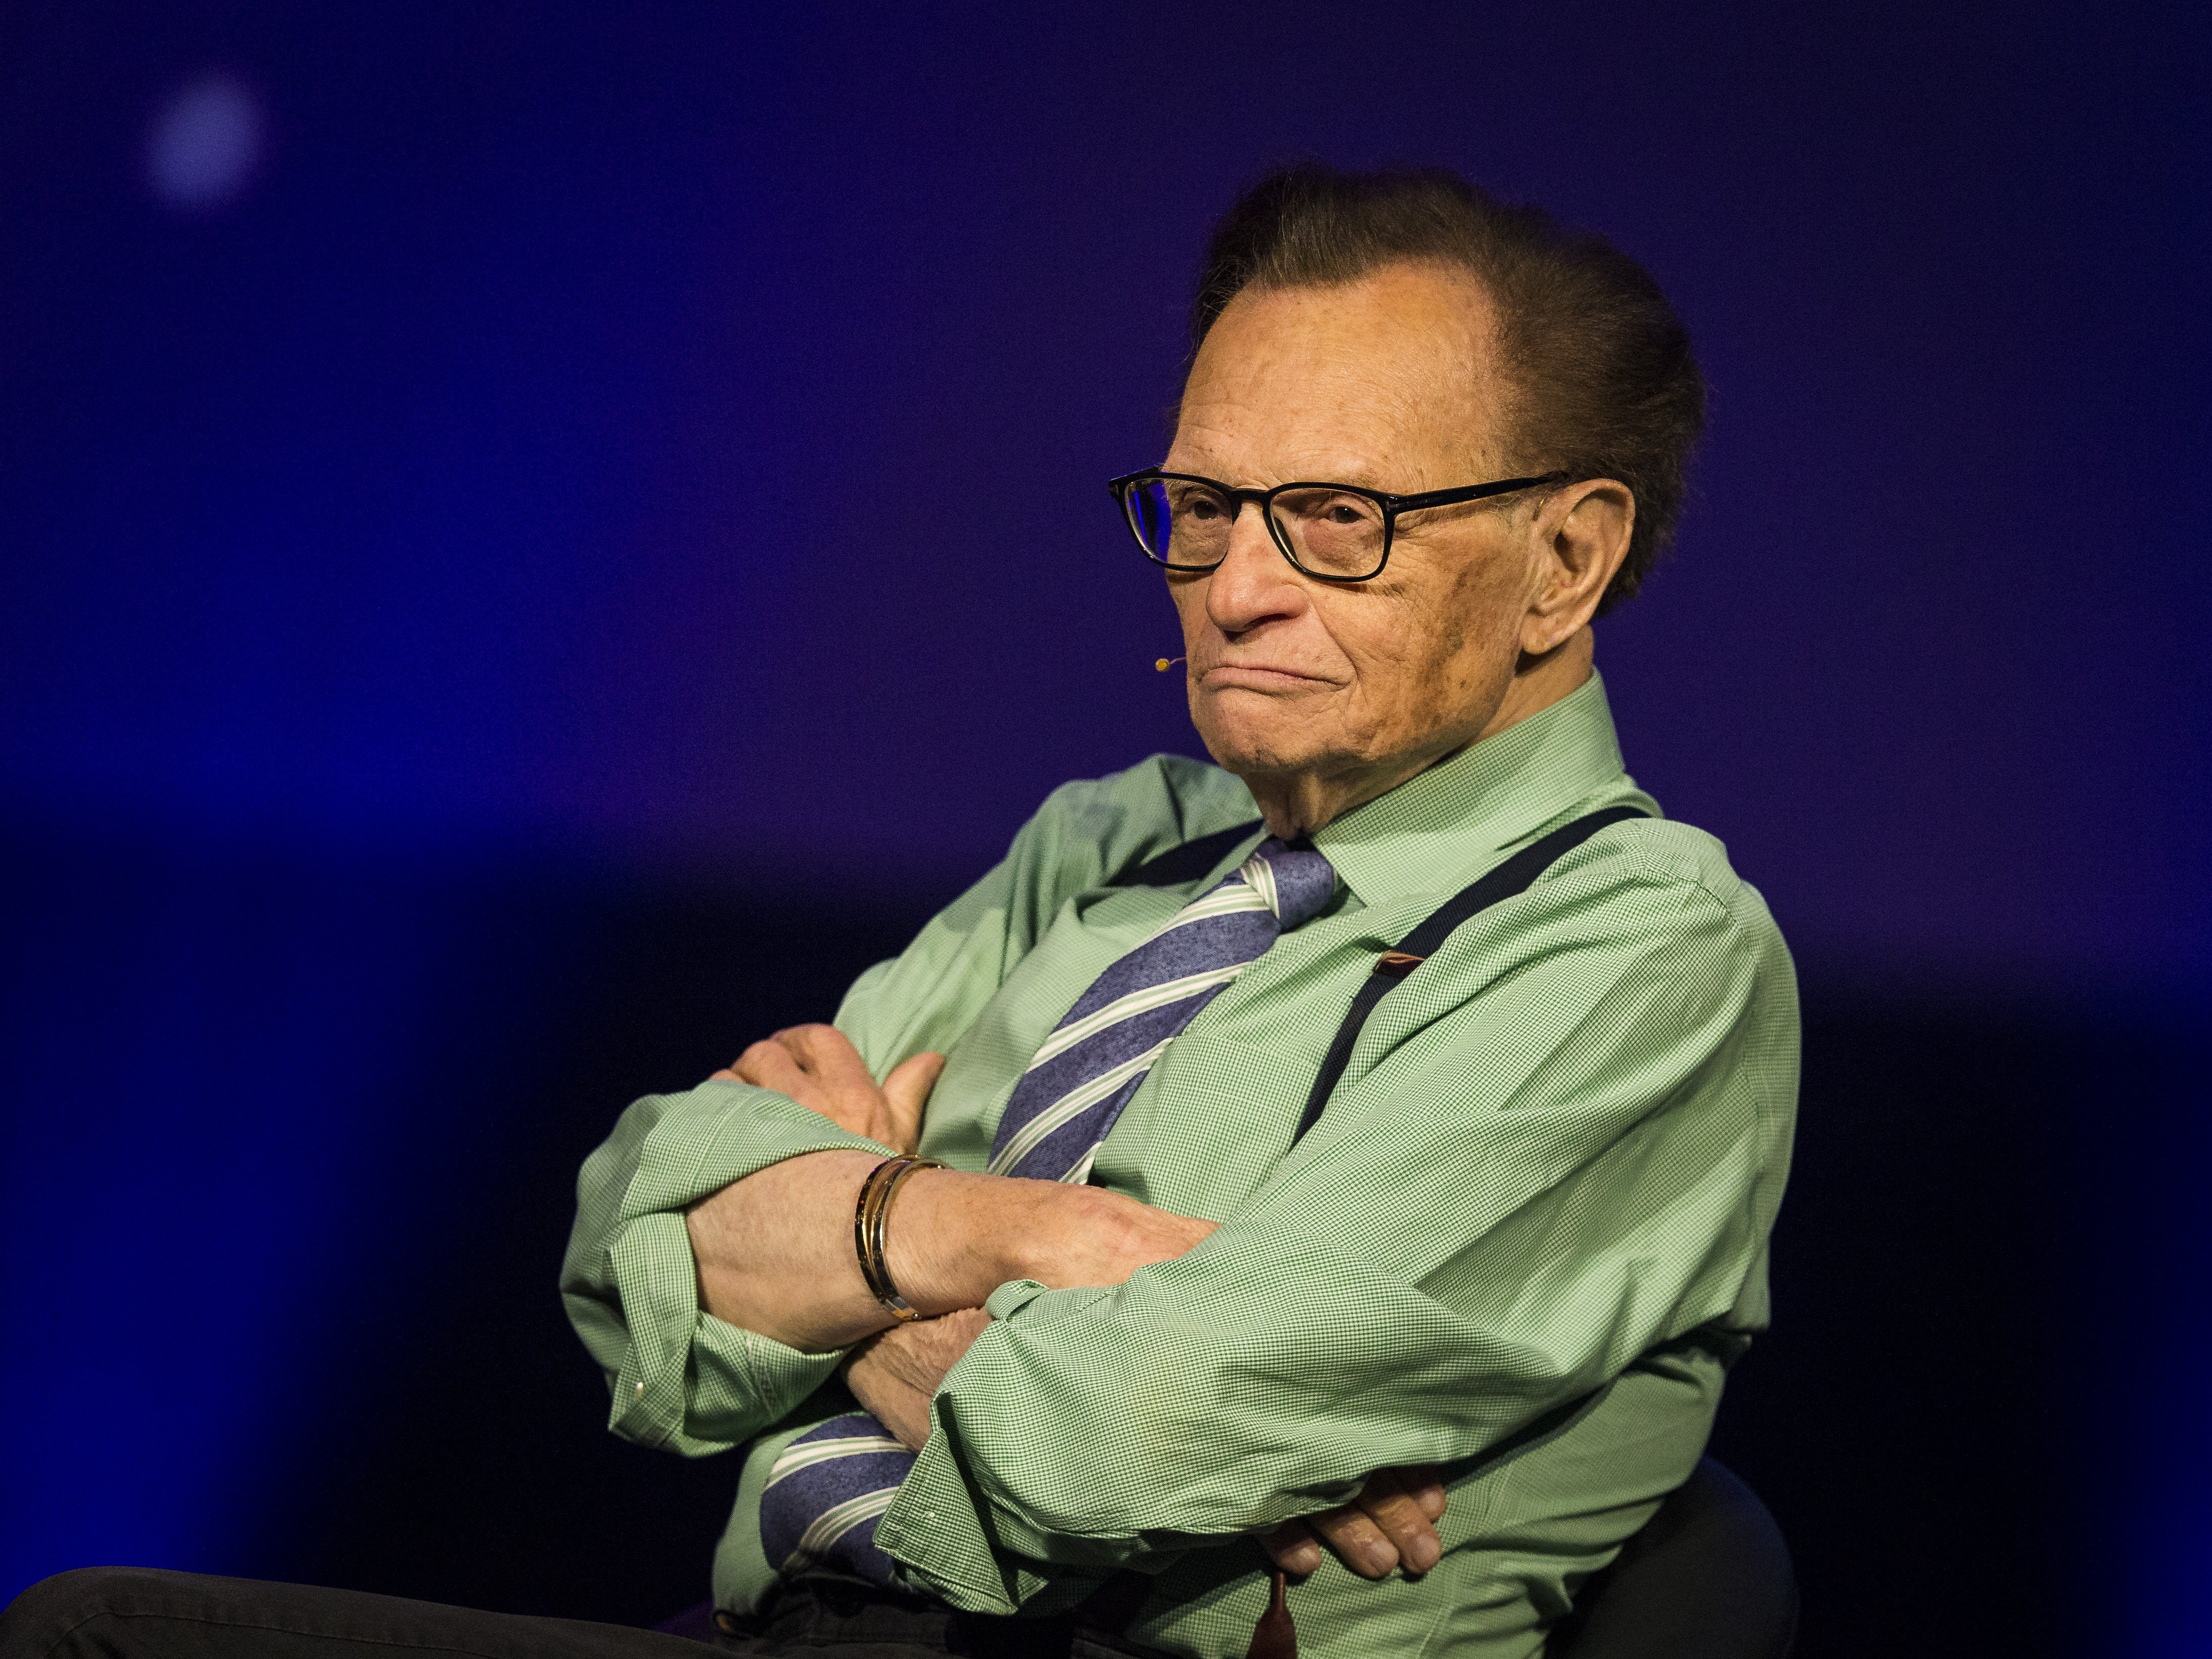 Larry King at the Starmus Festival on June 21, 2017 in Trondheim, Norway | Photo: Getty Images